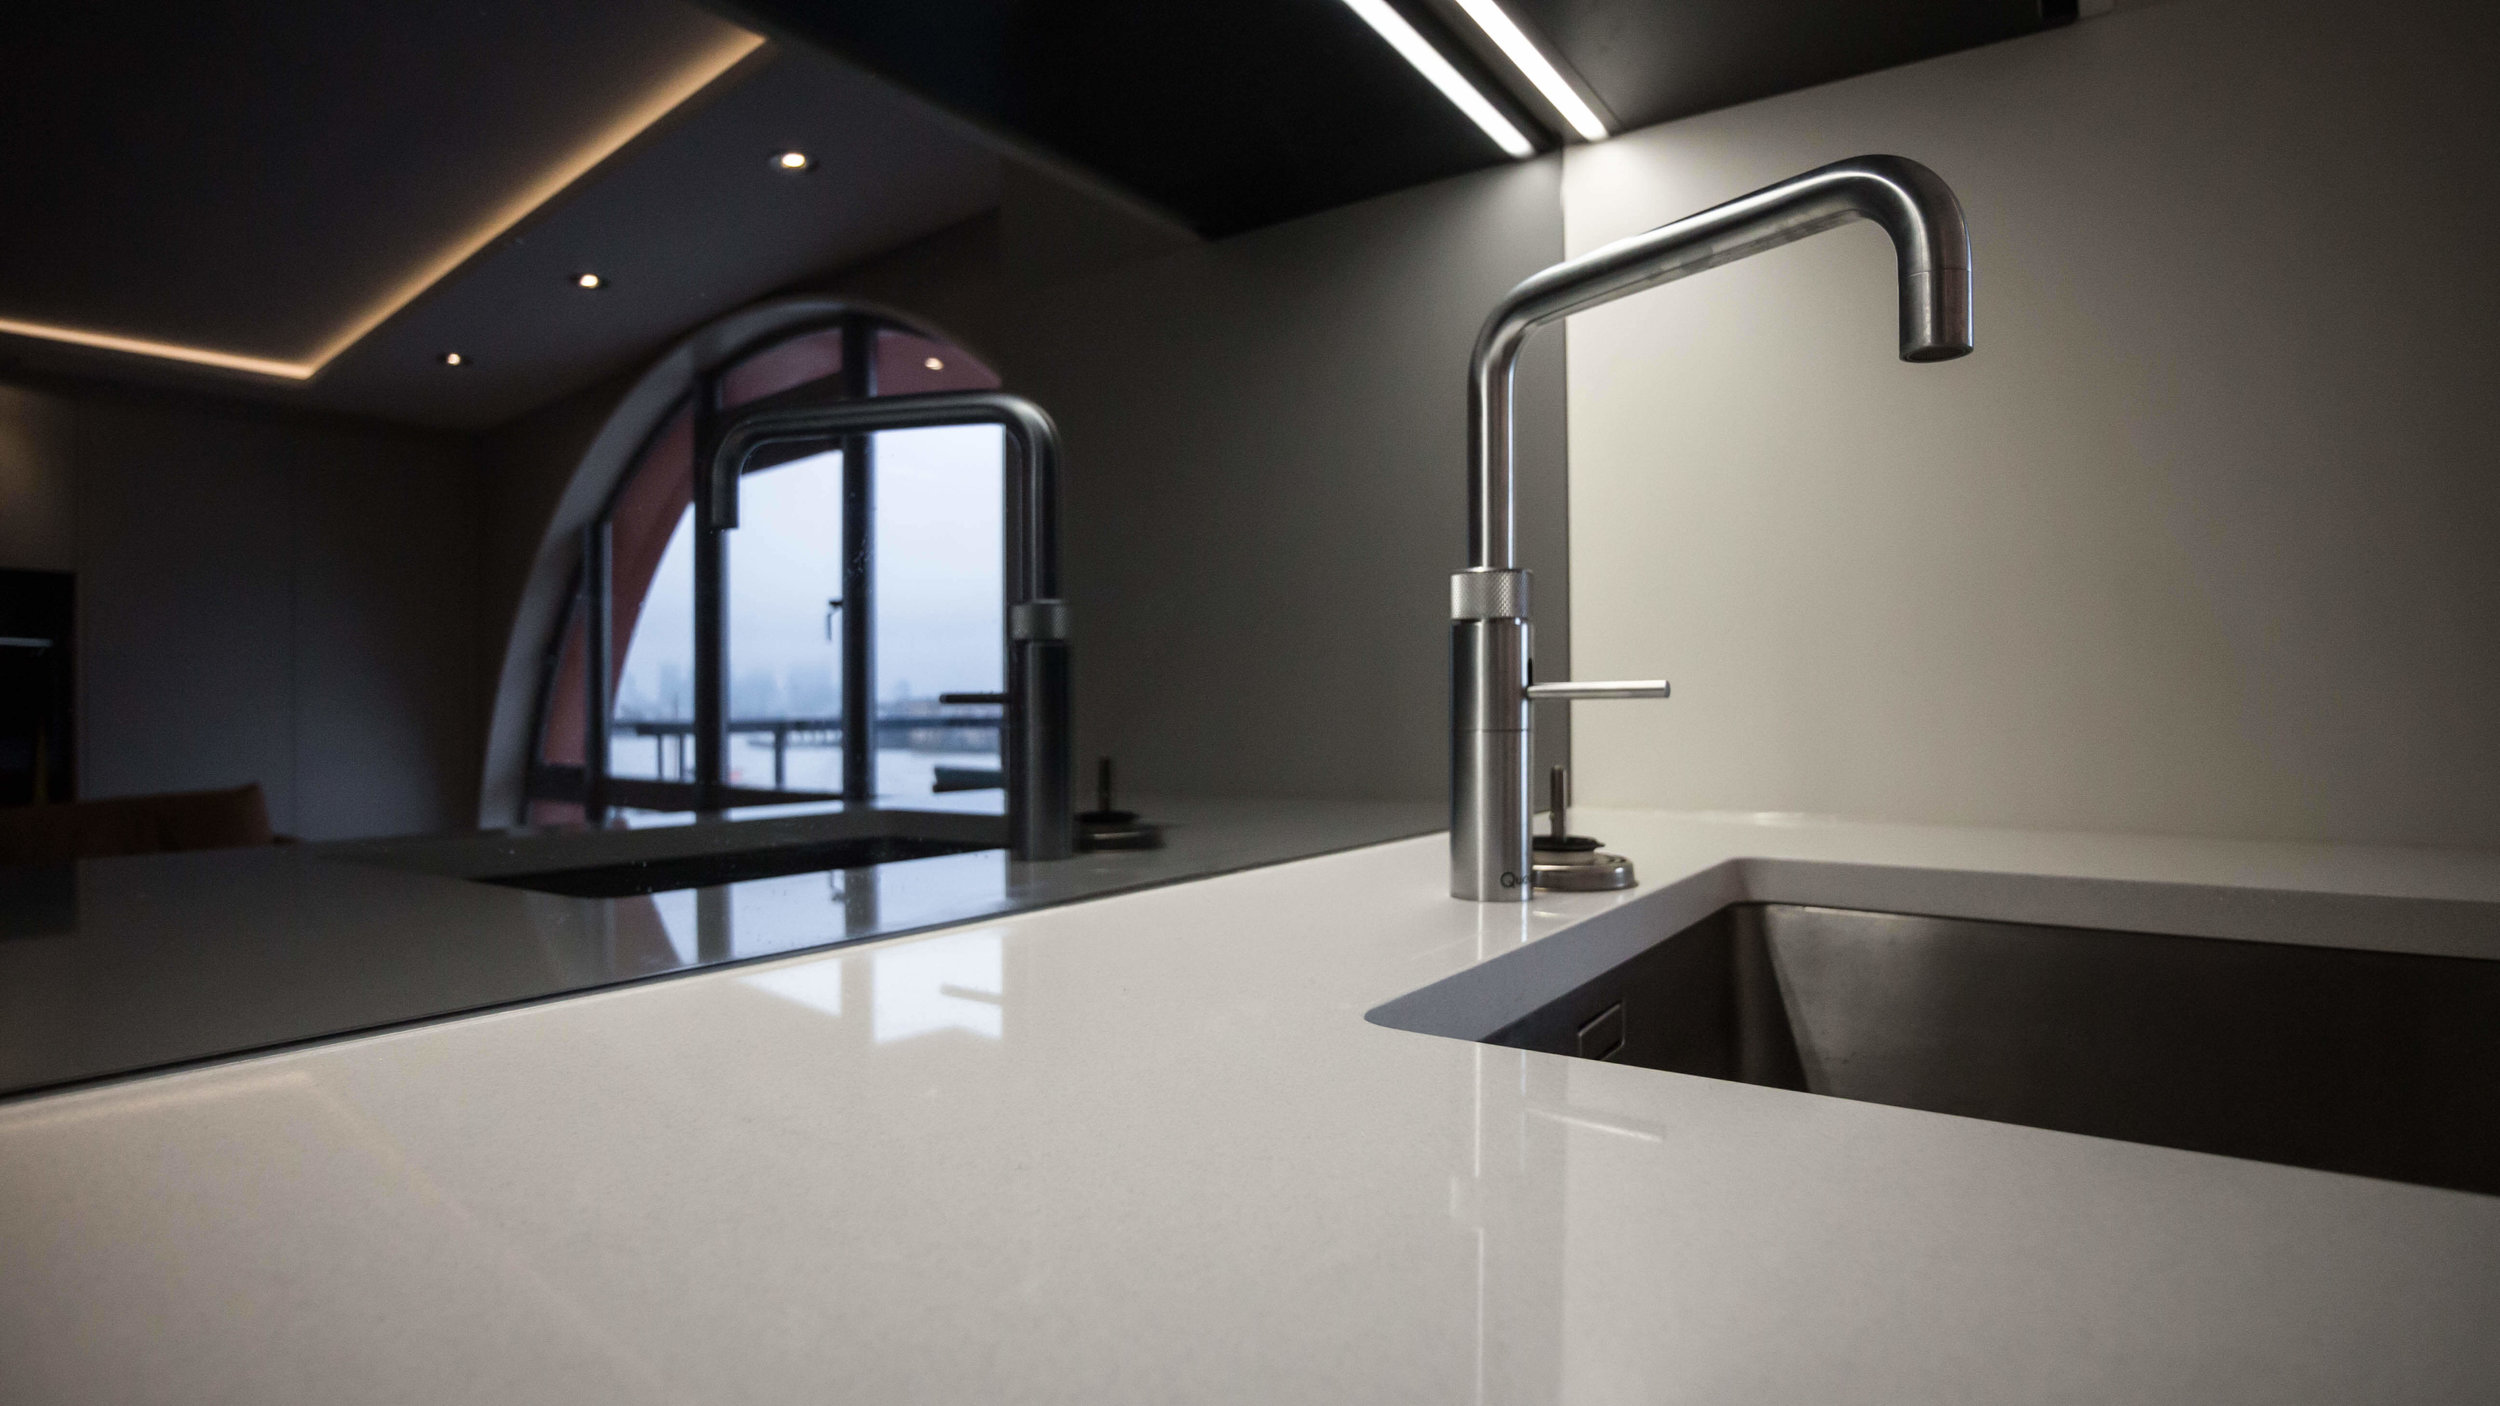 Ernest-Tsui-Architects-and-Partners-China-Wharf-Kitchen-Detail.jpg